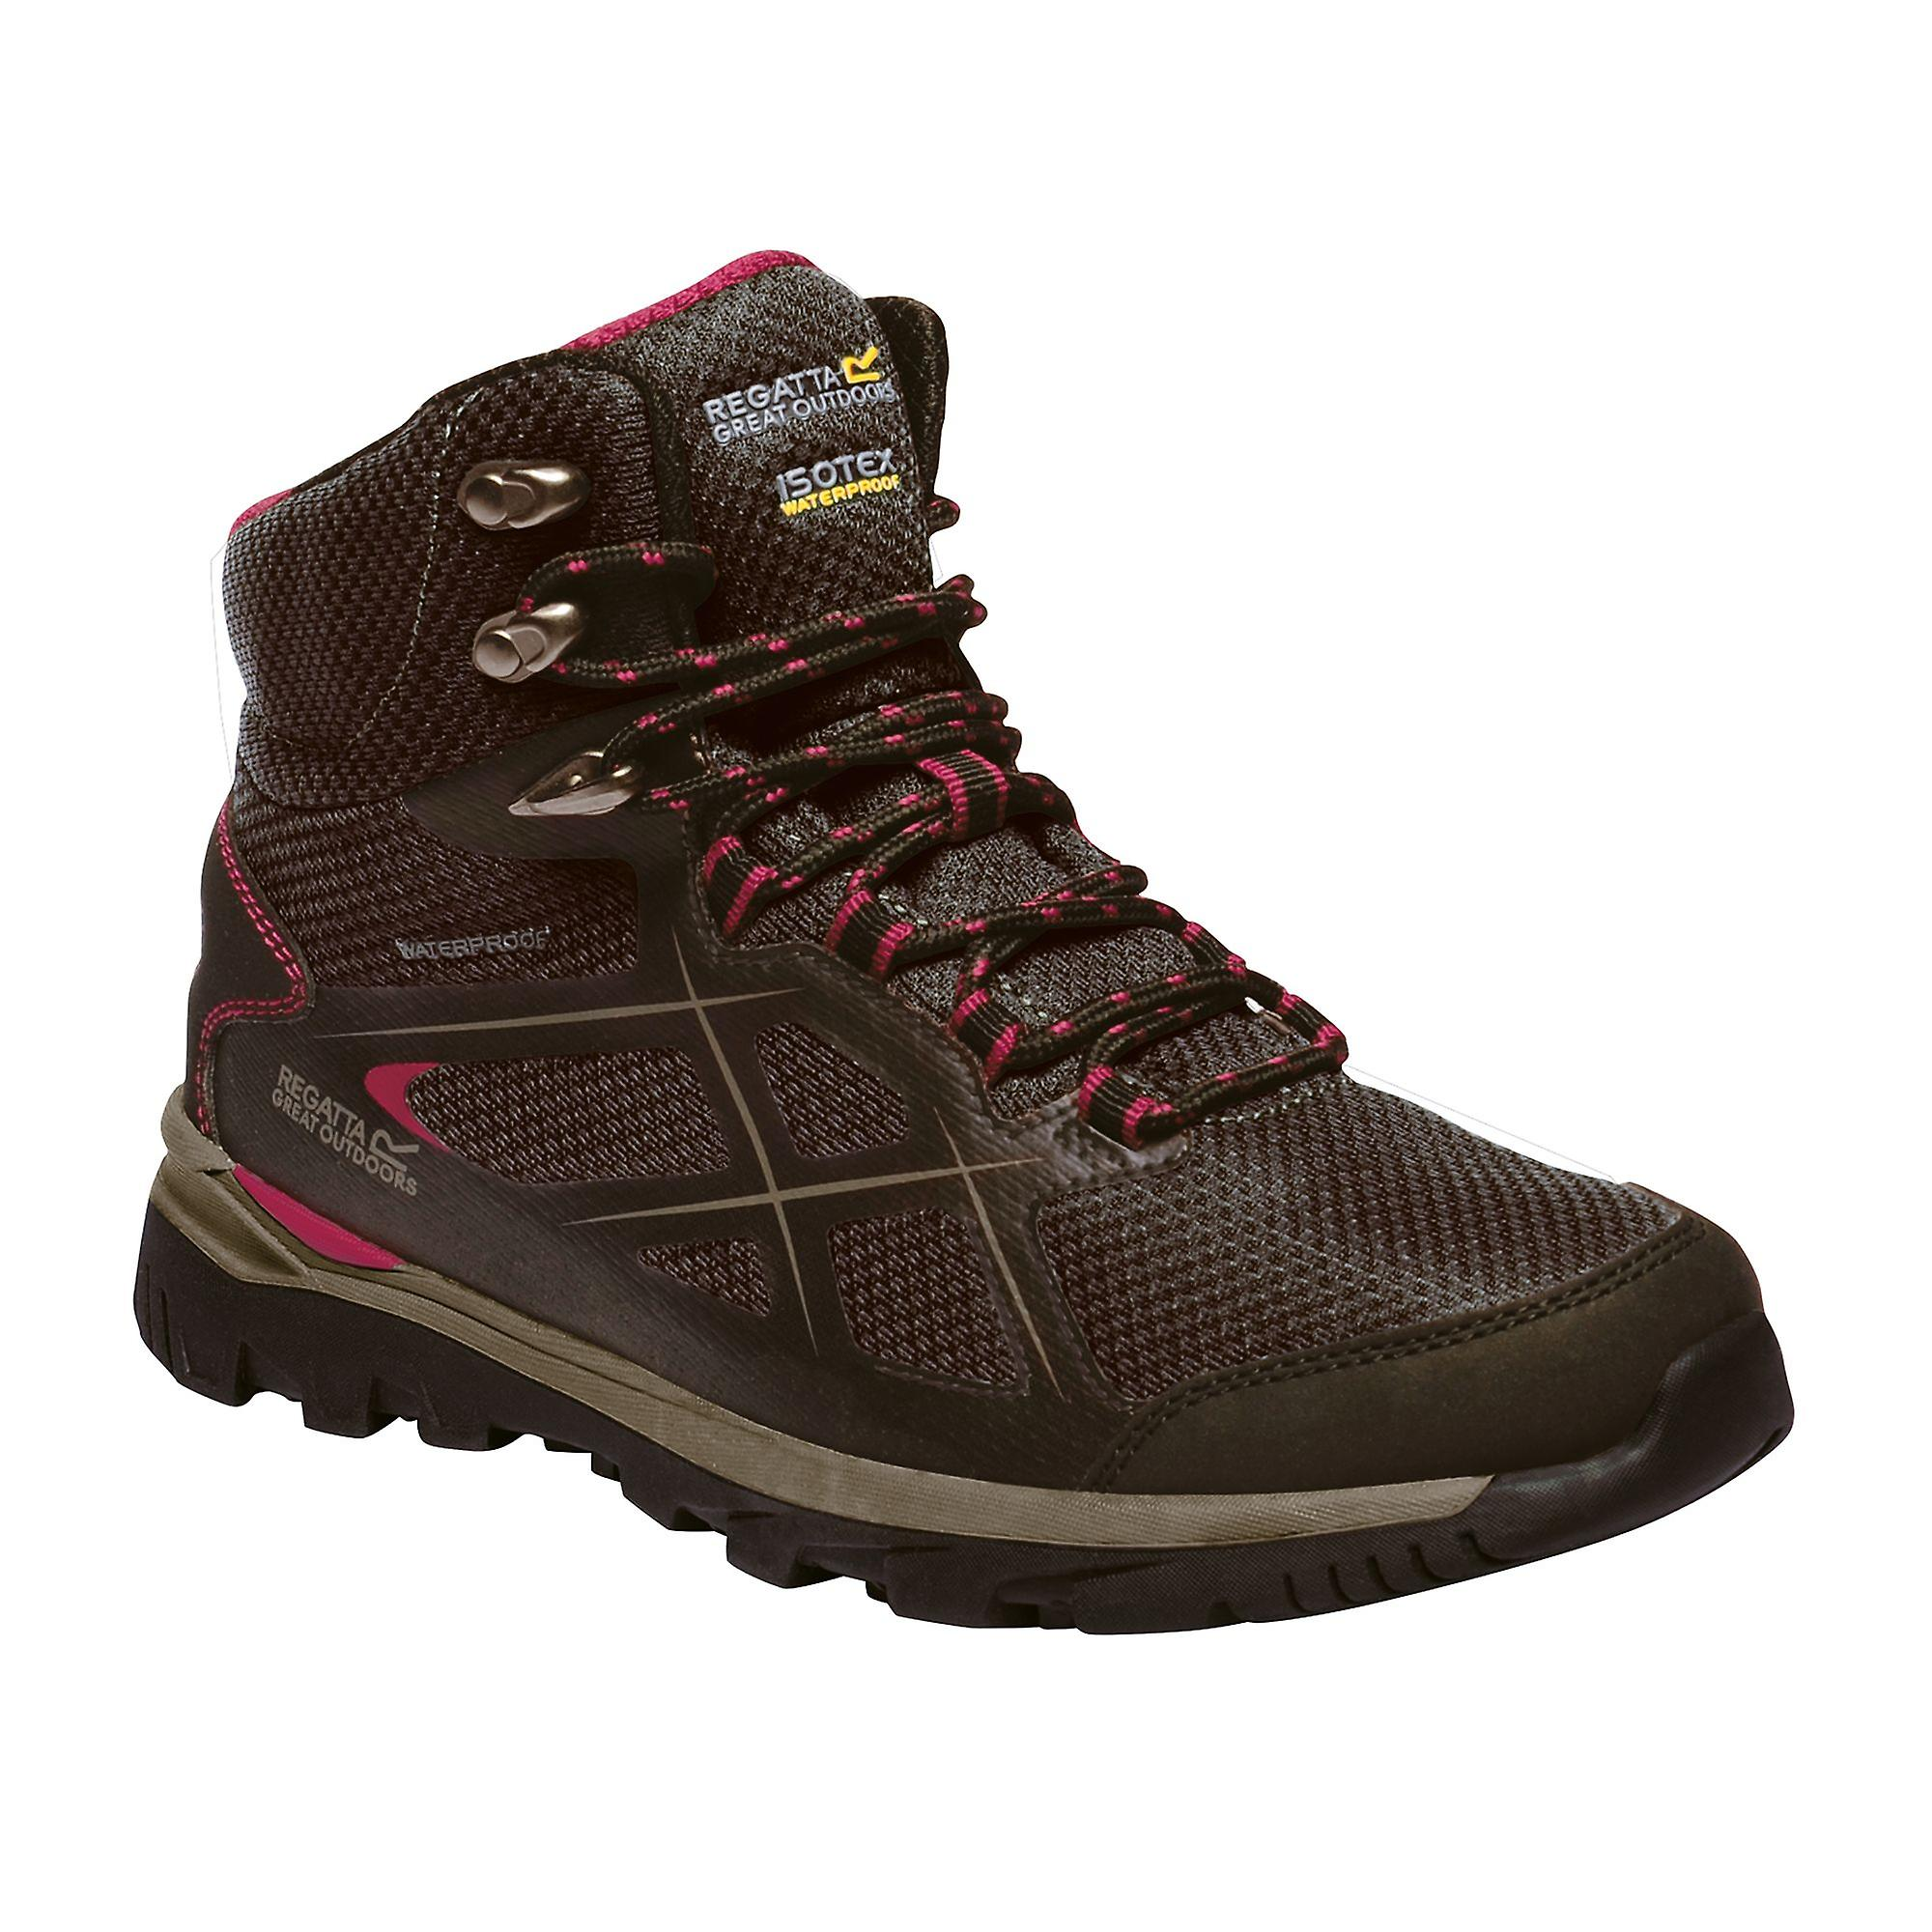 Regatta Great Outdoors Womens/ladies Kota Mid Walking Boots